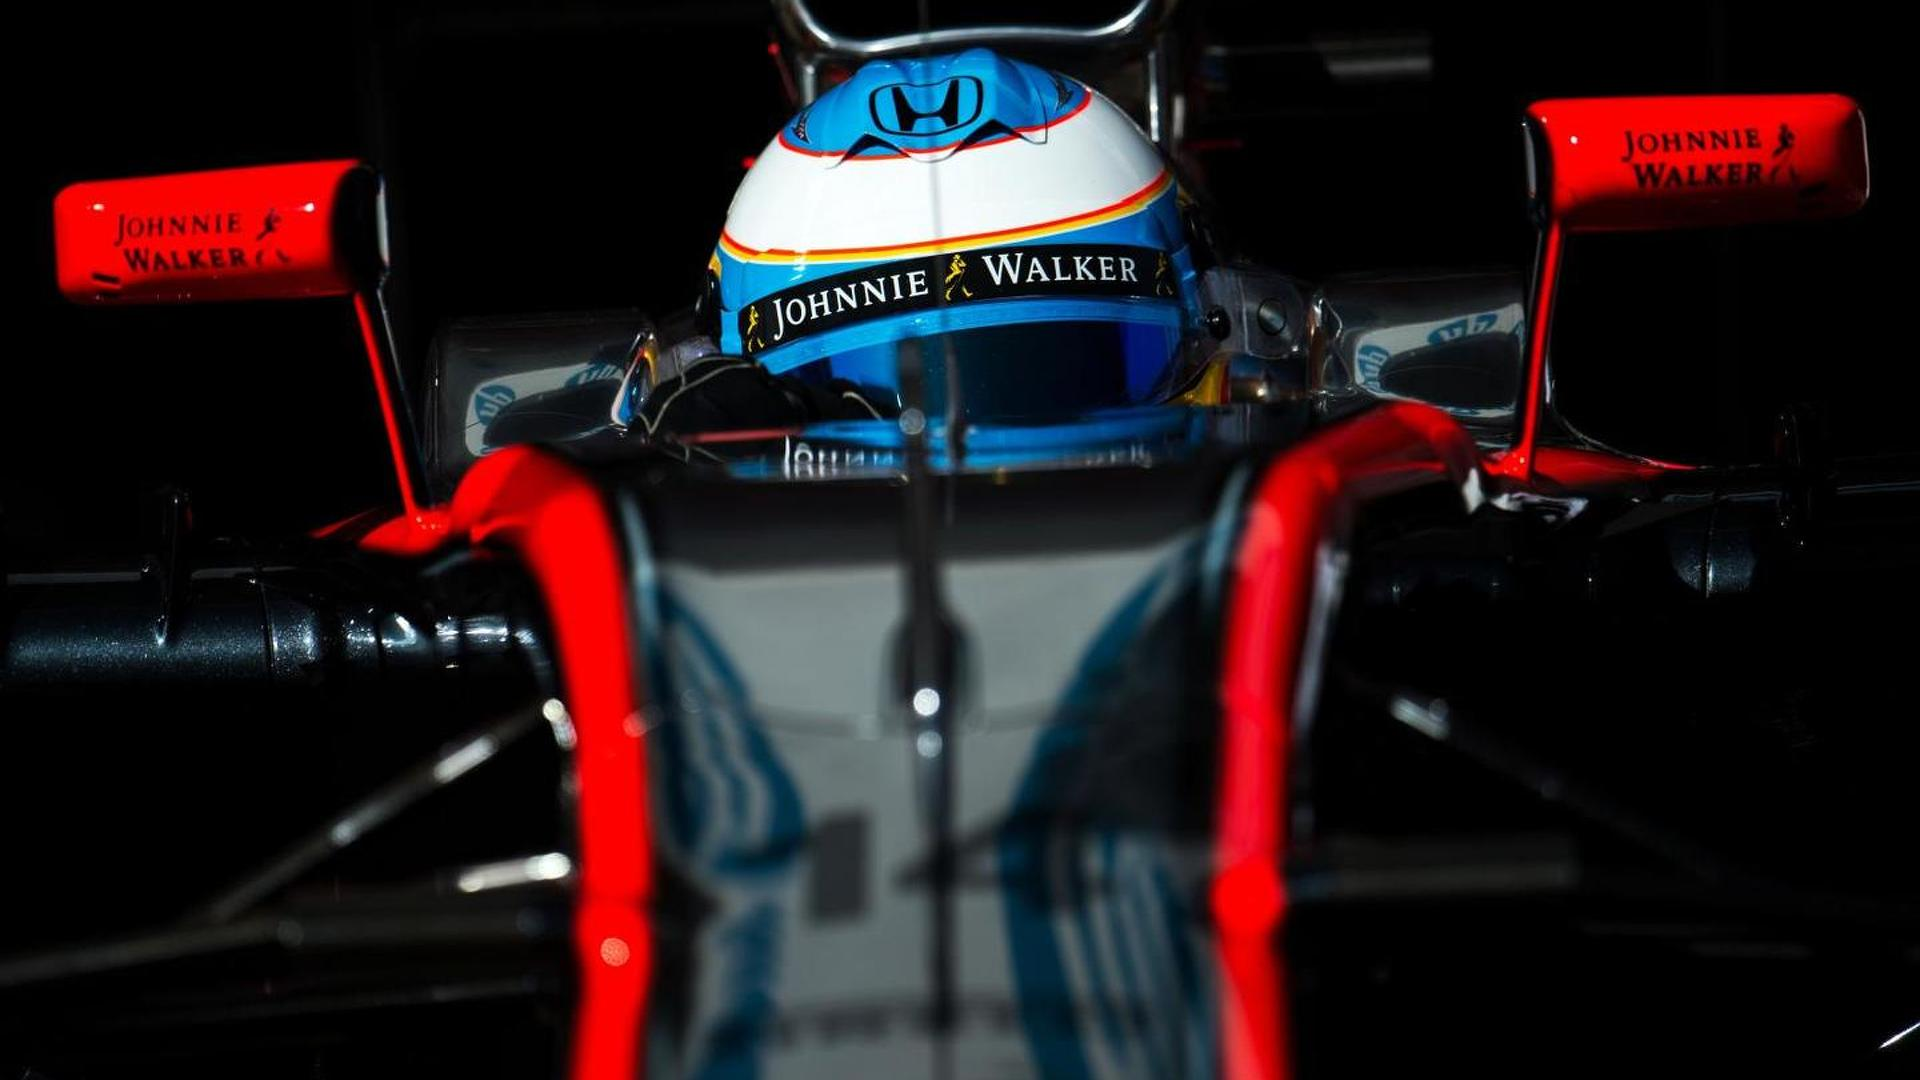 Alonso, Bottas, Manor all hoping to race